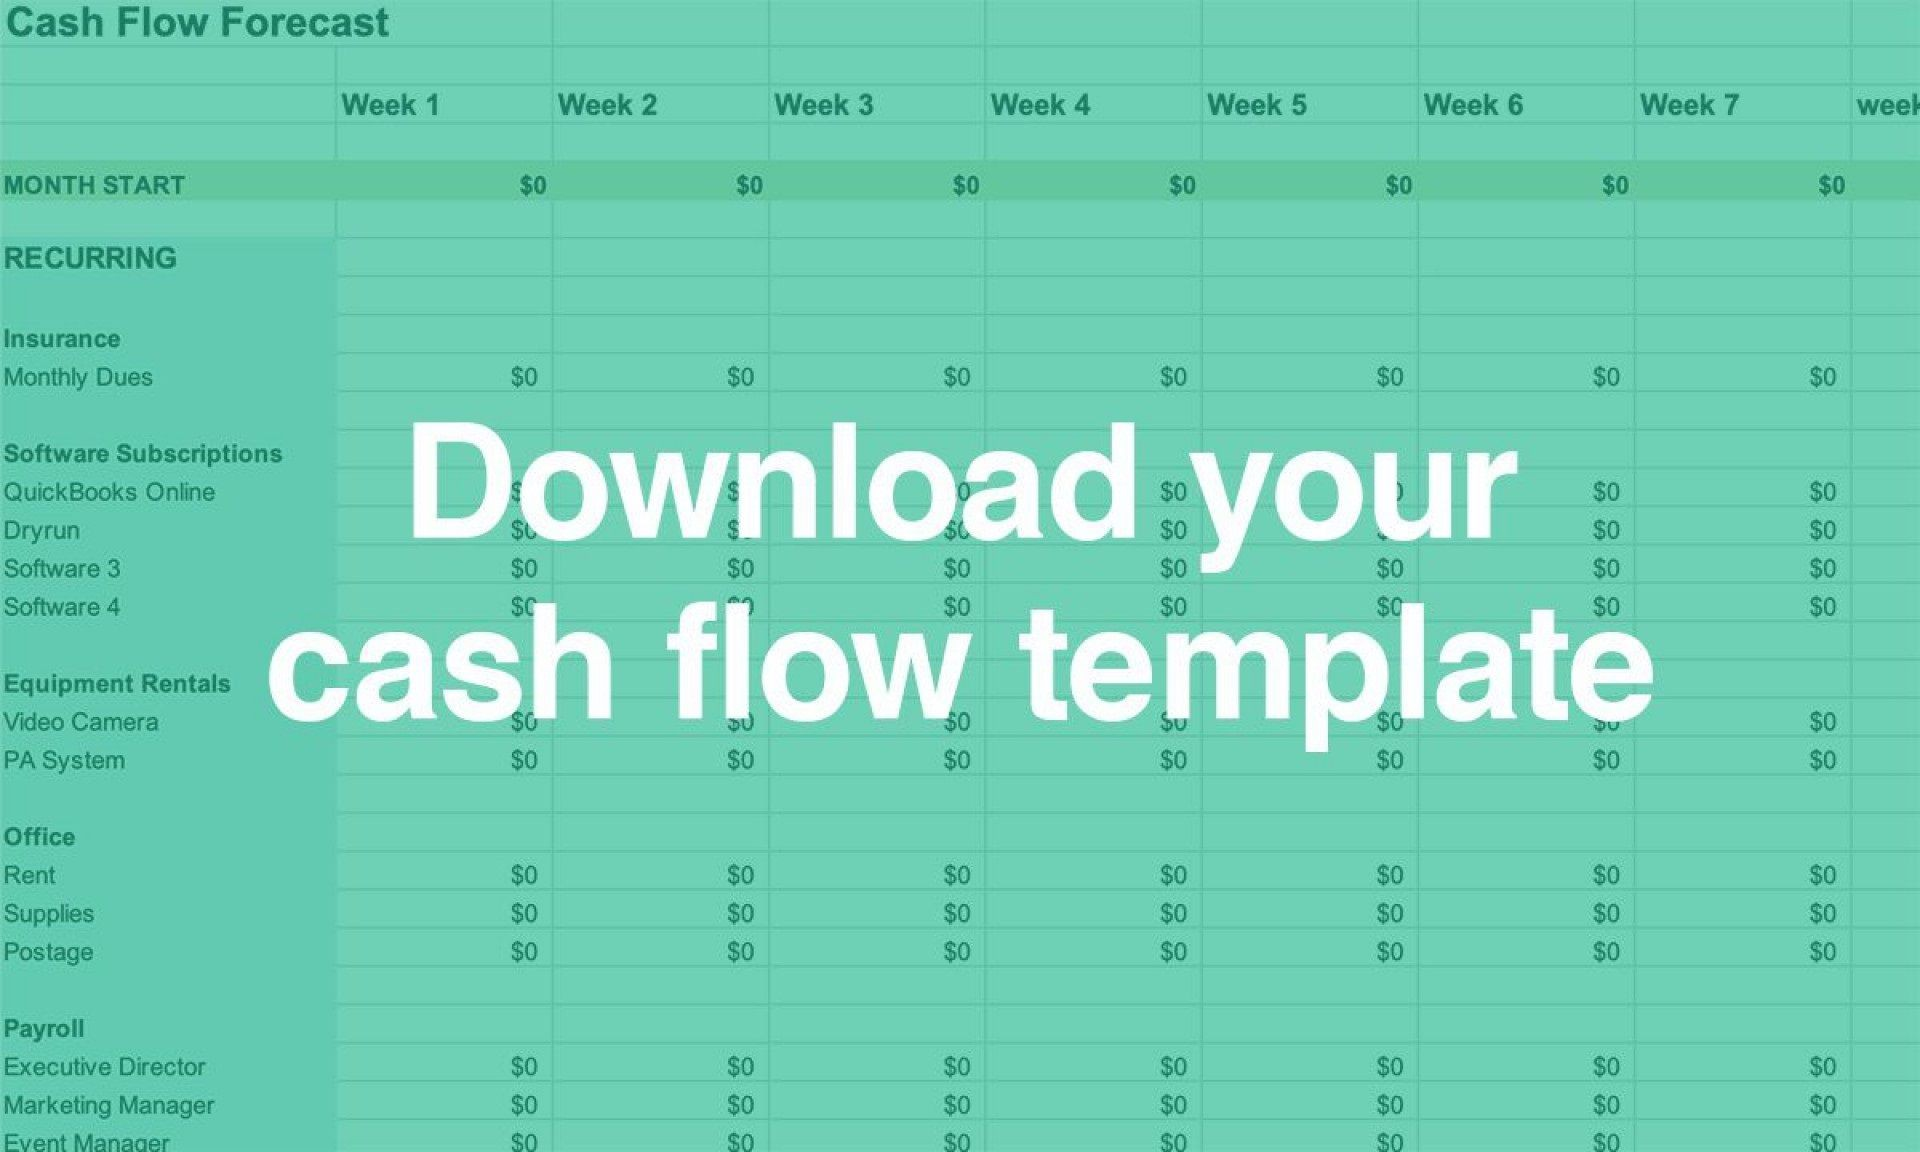 005 Astounding Cash Flow Template Excel Free Photo  Statement Download Format In1920